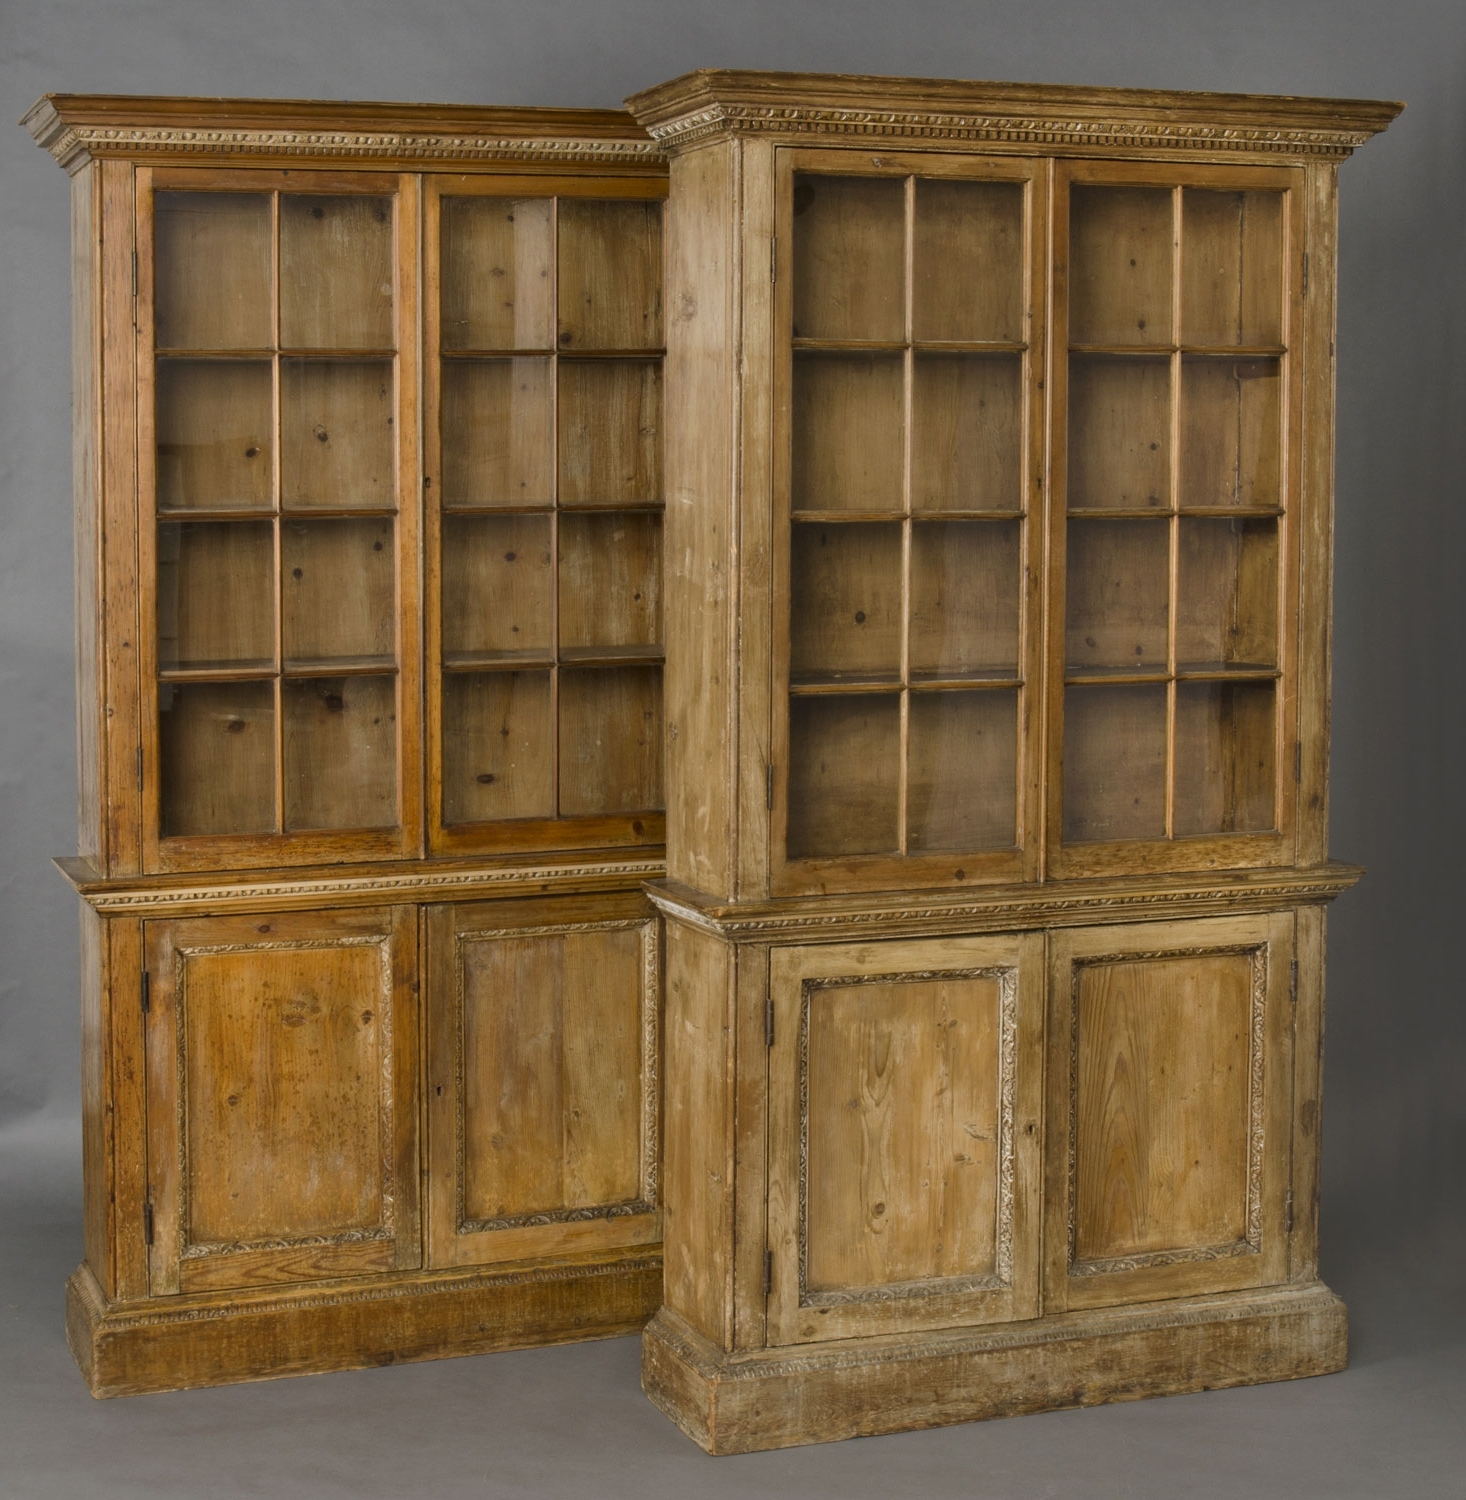 Product » Pair Pine Glazed Bookcases With Regard To Best And Newest Pine Bookcases (View 7 of 15)